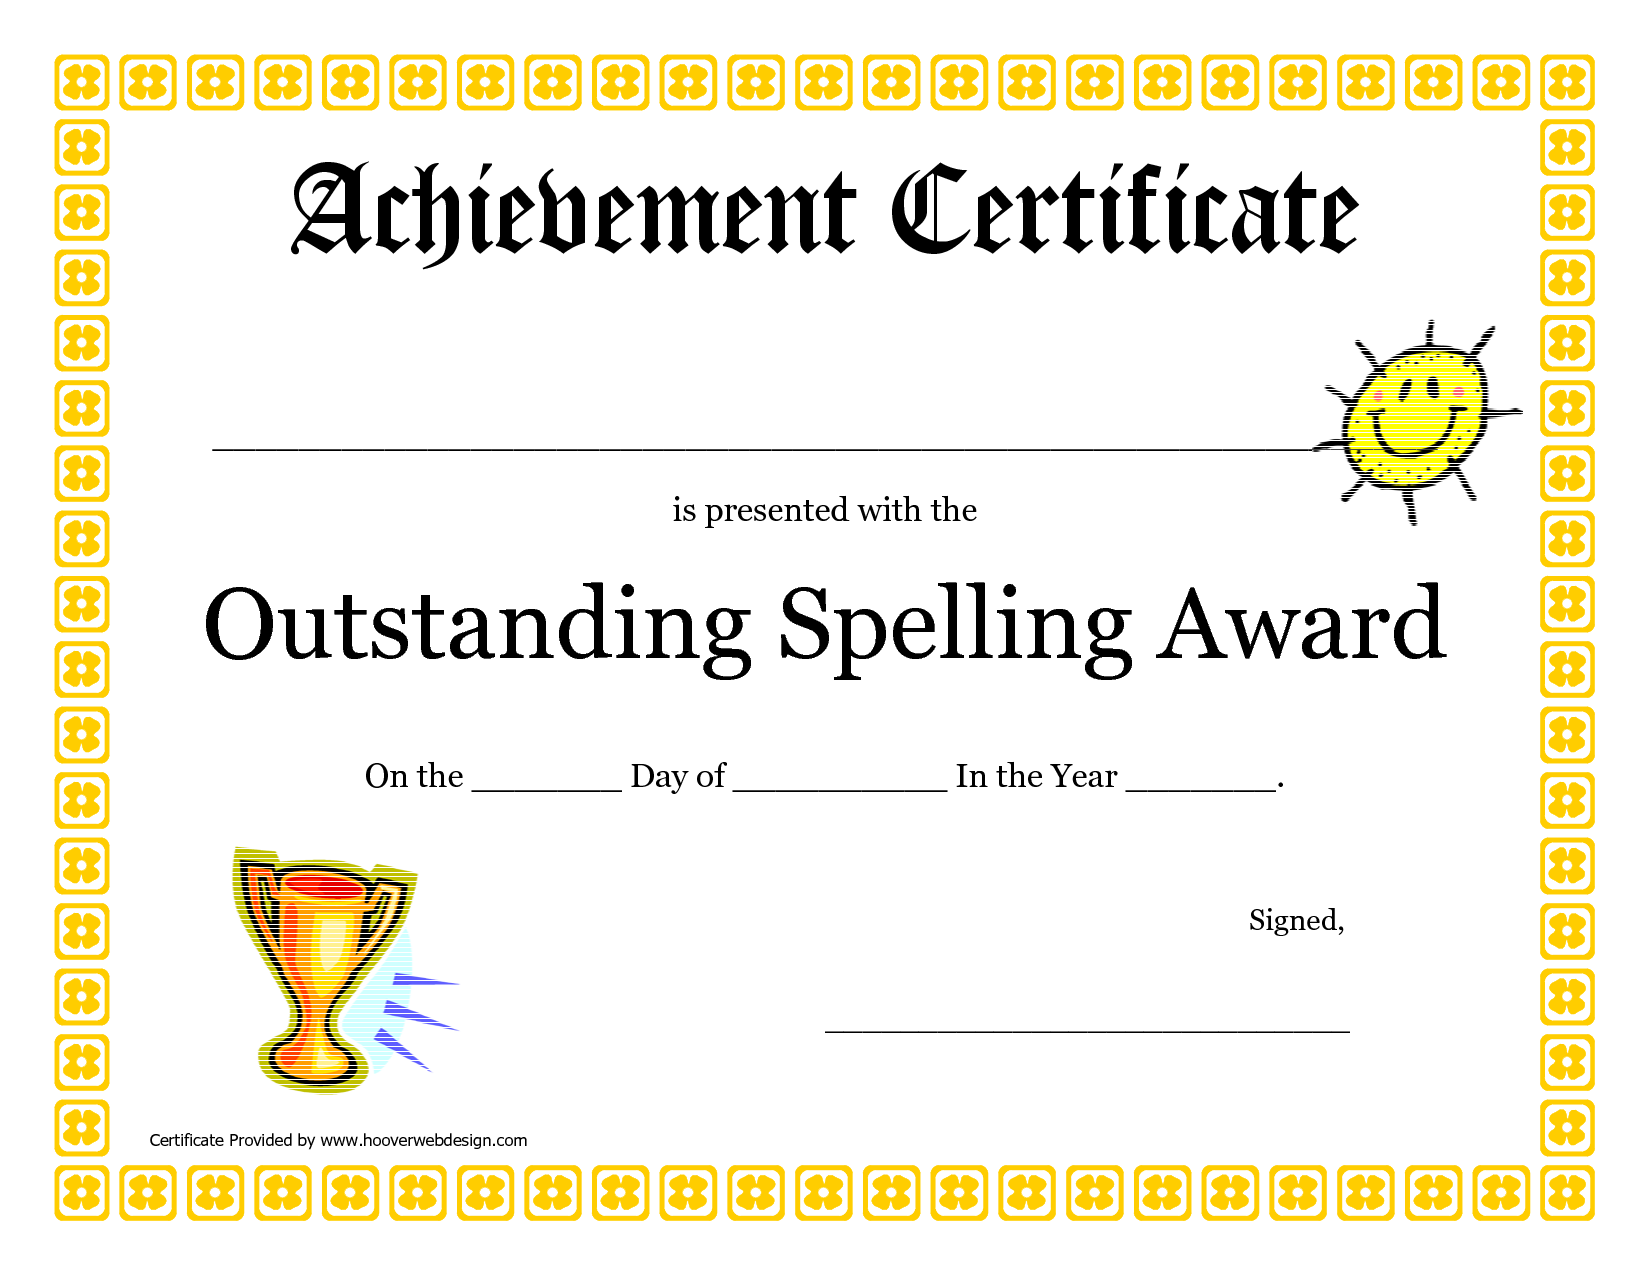 Outstanding Spelling Award Printable Certificate Pdf picture – Free Customizable Printable Certificates of Achievement